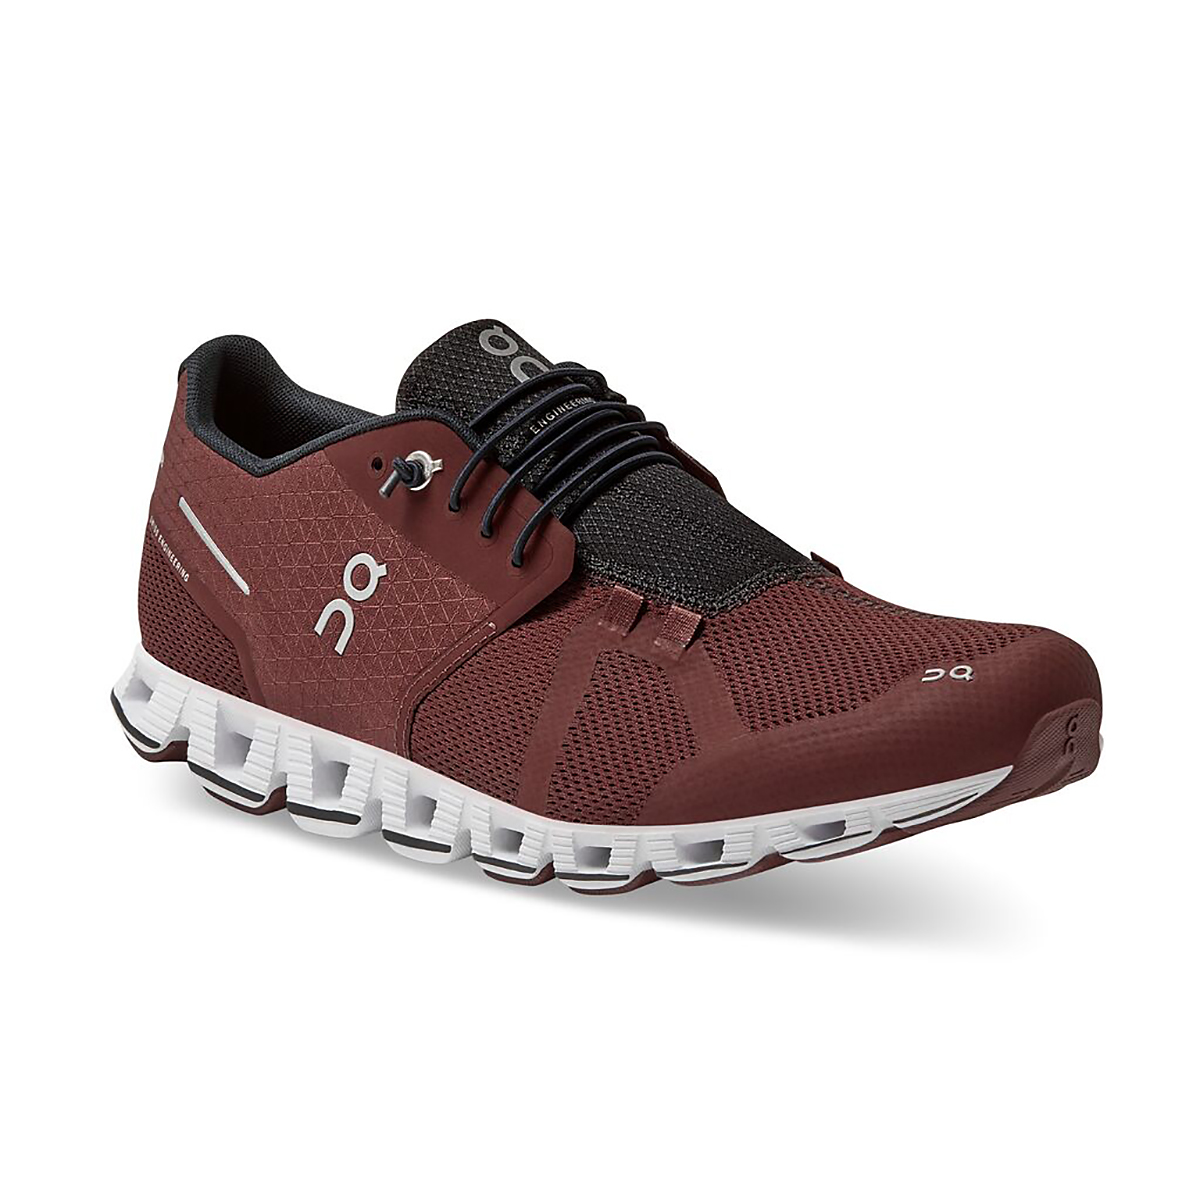 Men's On Cloud Lifestyle Shoe - Color: Ox/White - Size: 7 - Width: Regular, Ox/White, large, image 5